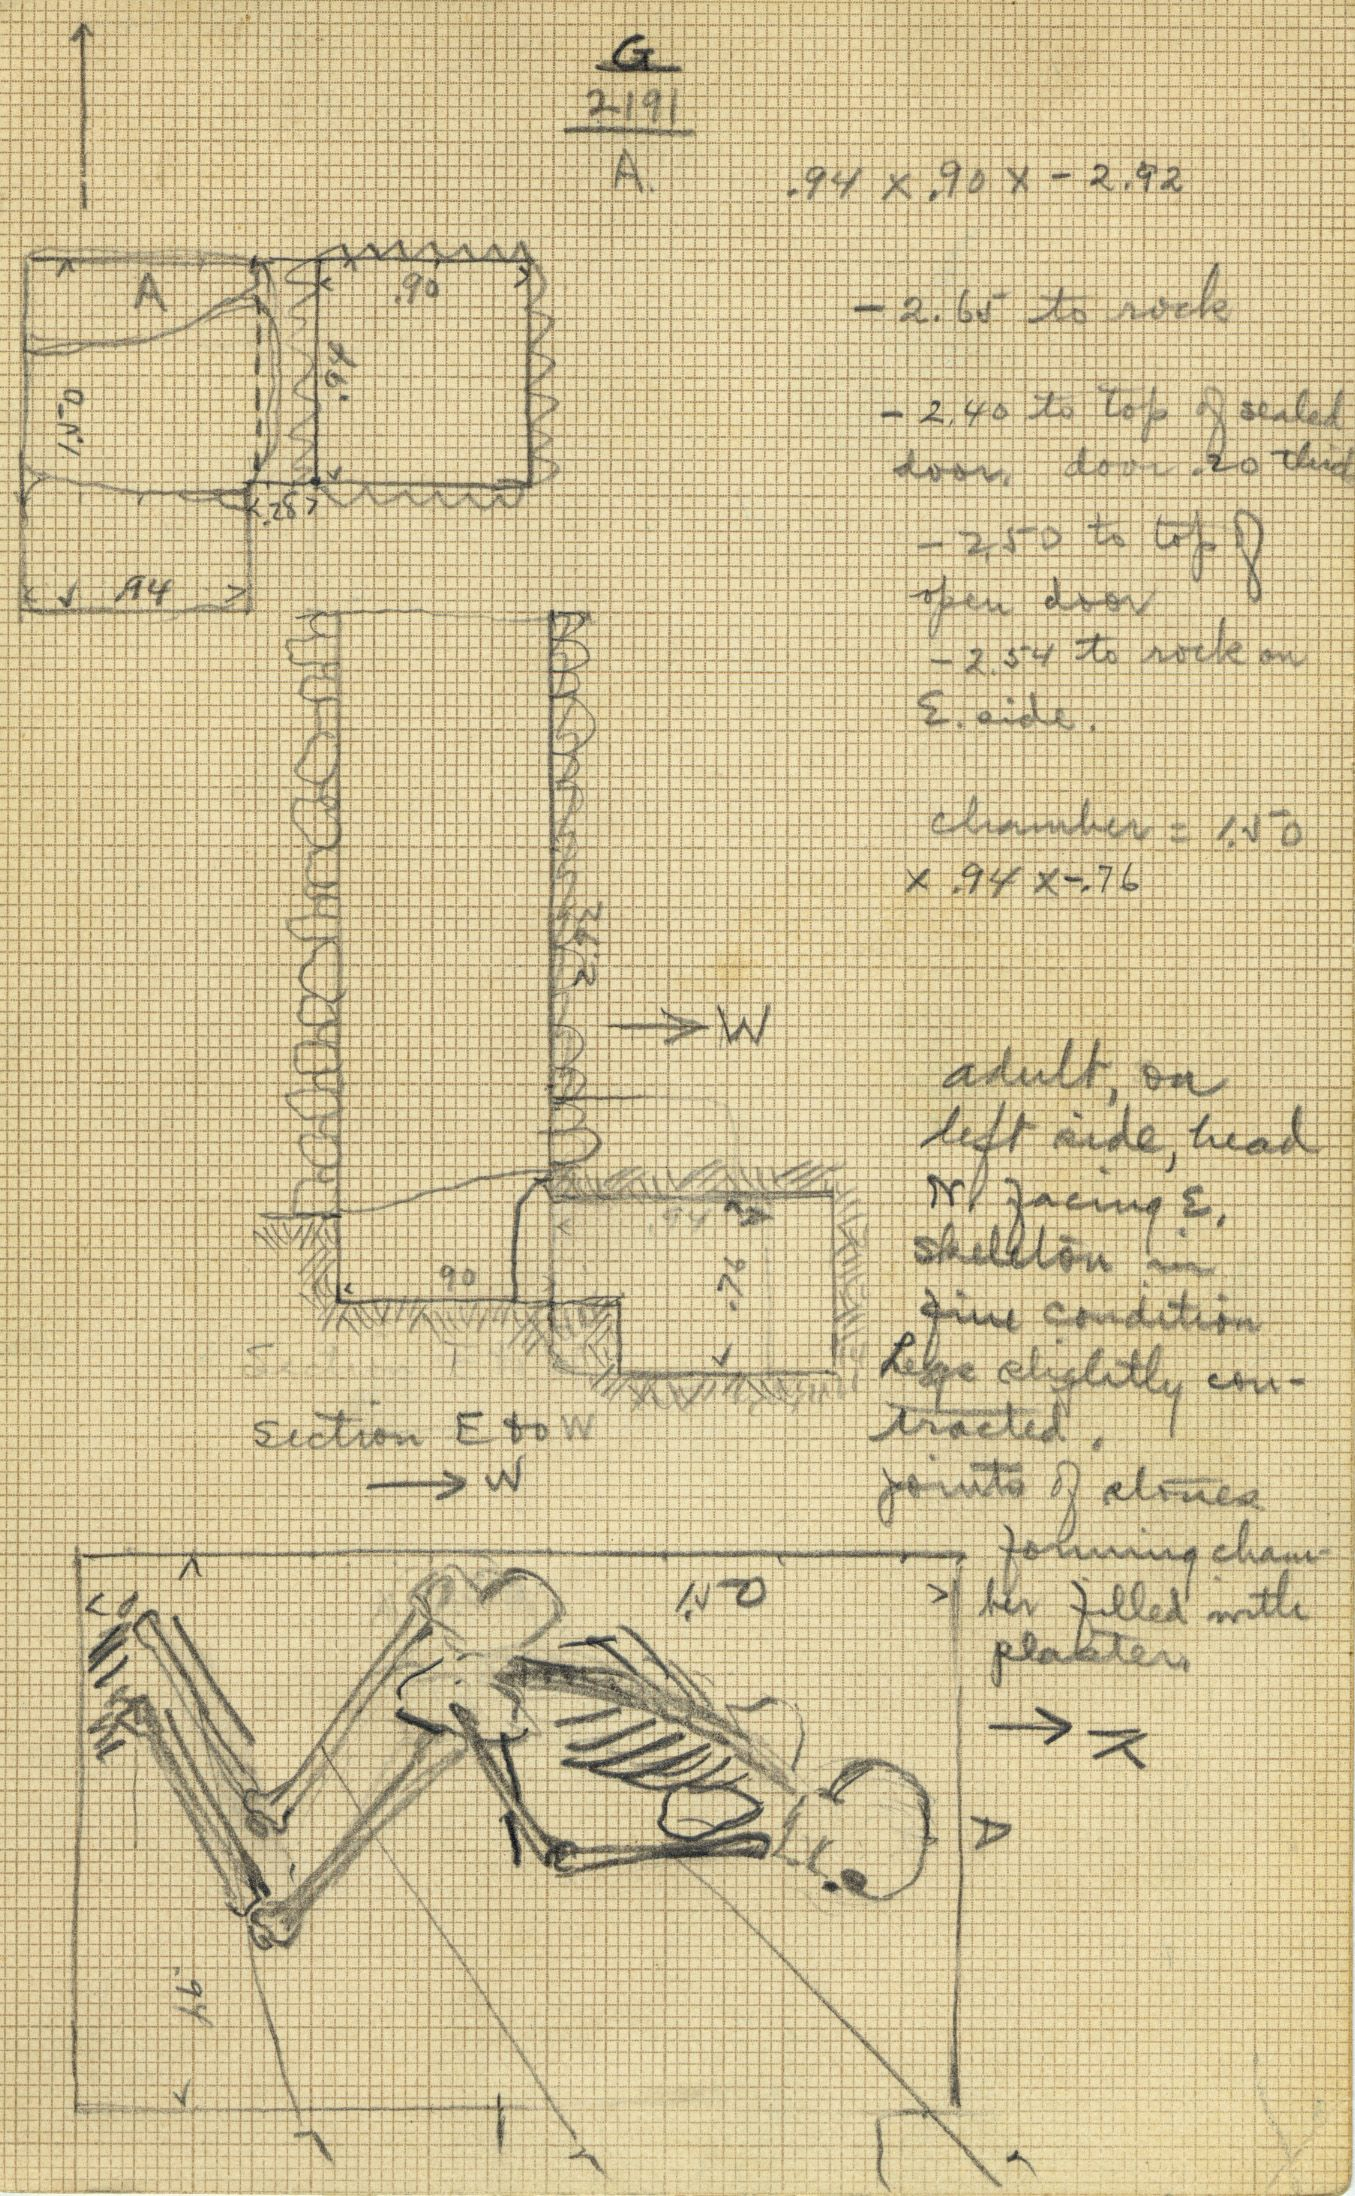 Maps and plans: G 2191, Shaft A